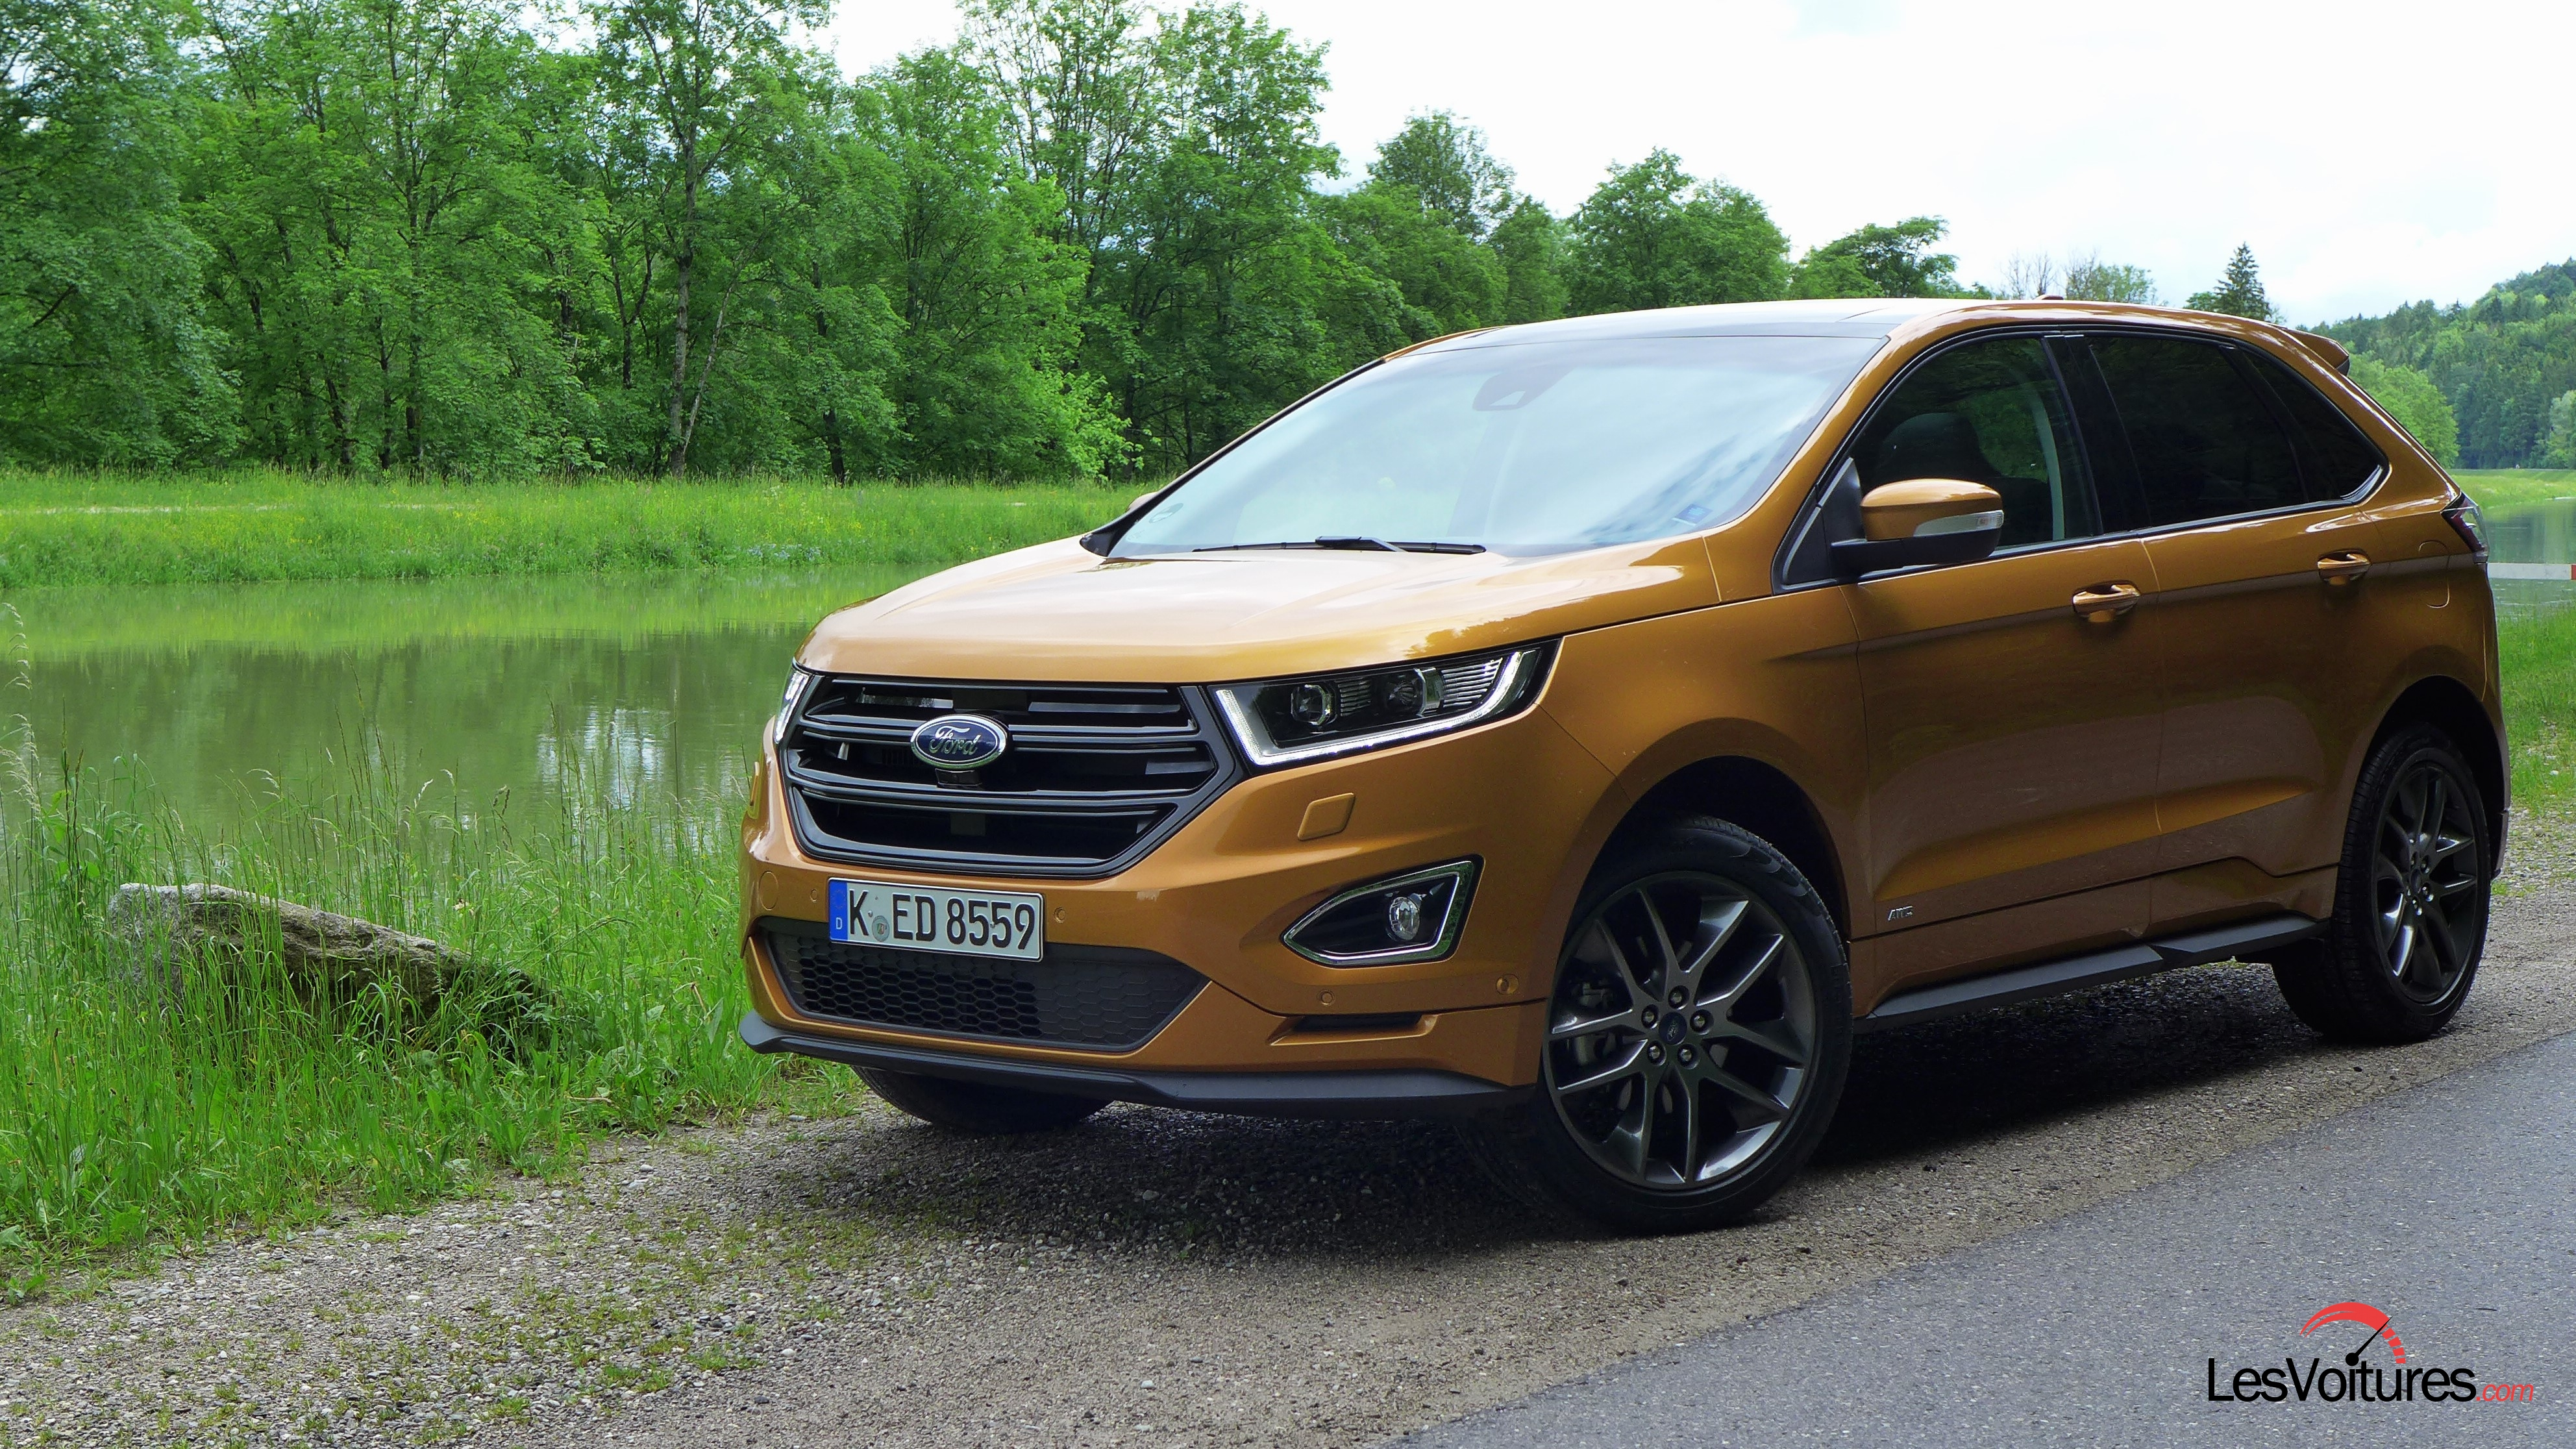 essai ford edge suv test drive 2016 6 les voitures. Black Bedroom Furniture Sets. Home Design Ideas